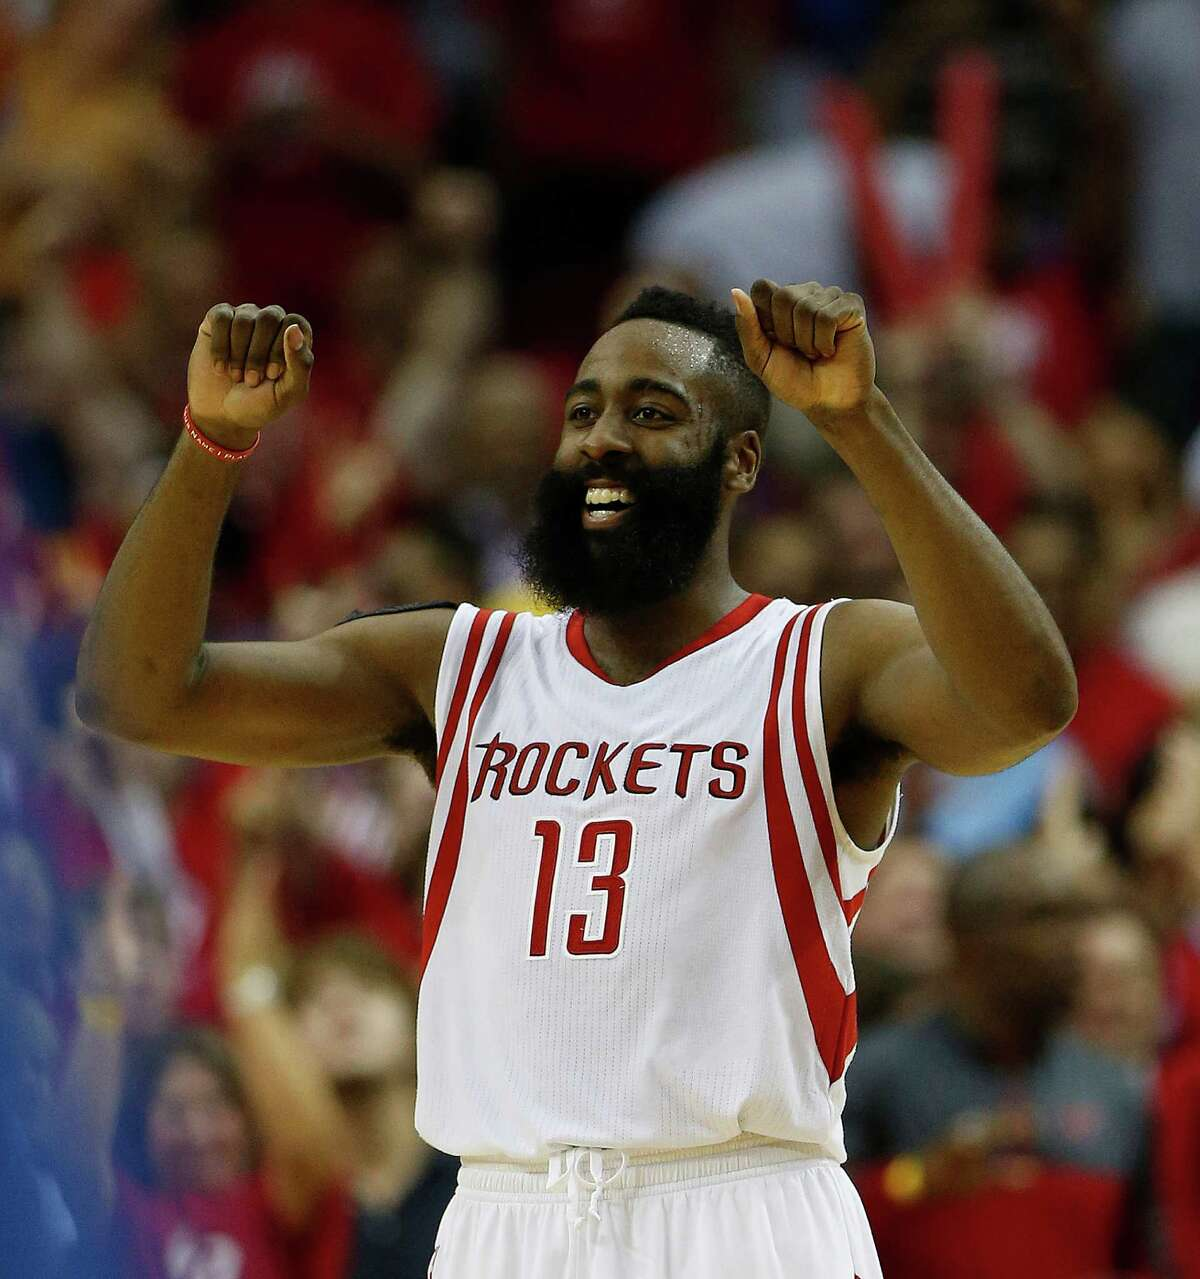 Harden says it's easy for him to keep a smile on his face.